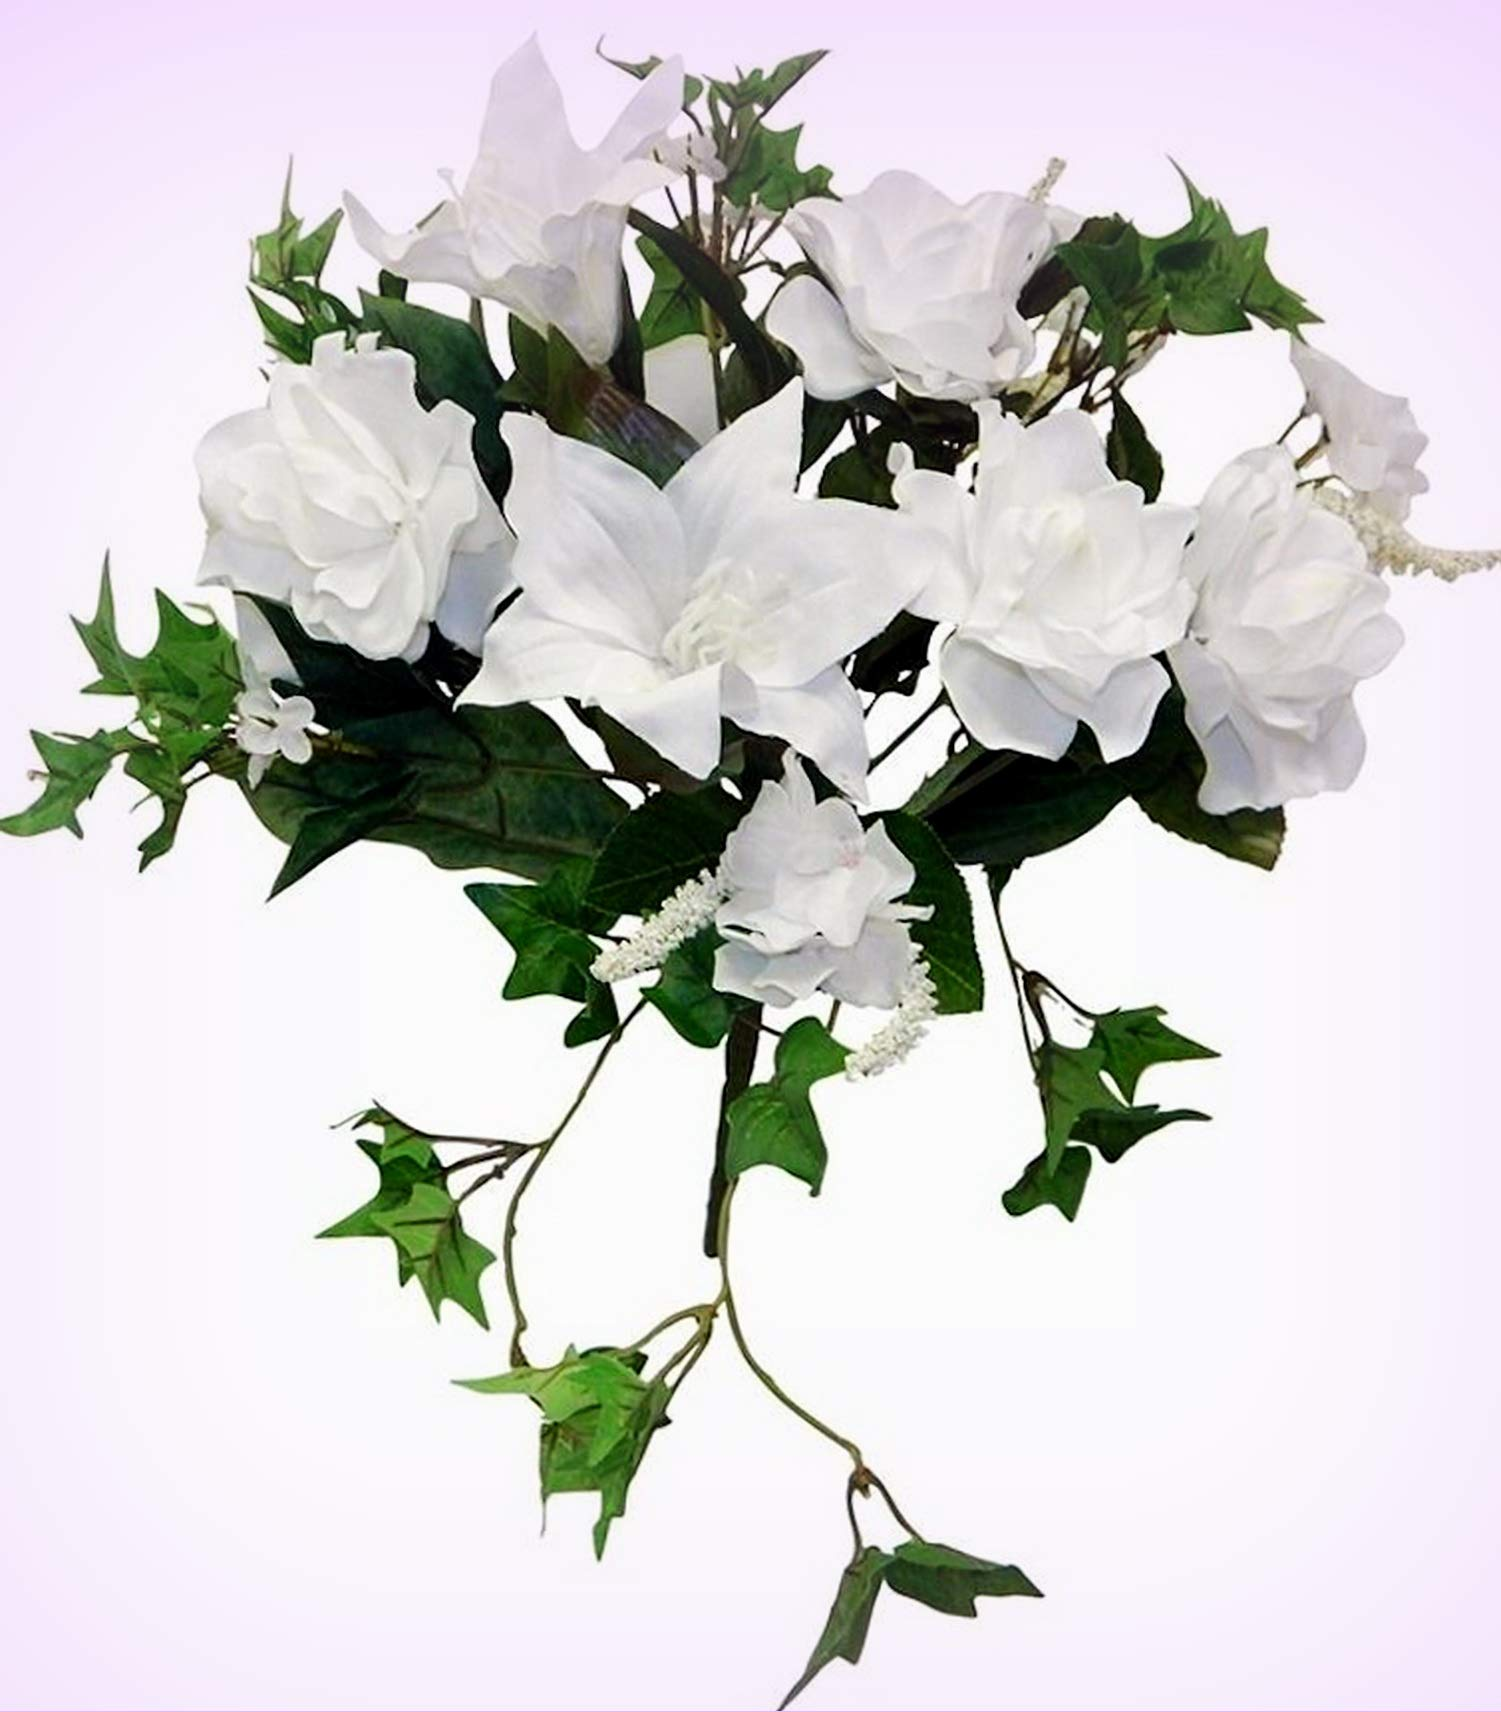 Inna-Wholesale-Art-Crafts-New-White-Gardenia-Tiger-Lily-Ivy-Bouquet-Silk-Decorating-Flowers-Centerpieces-Perfect-for-Any-Wedding-Special-Occasion-or-Home-Office-Dcor